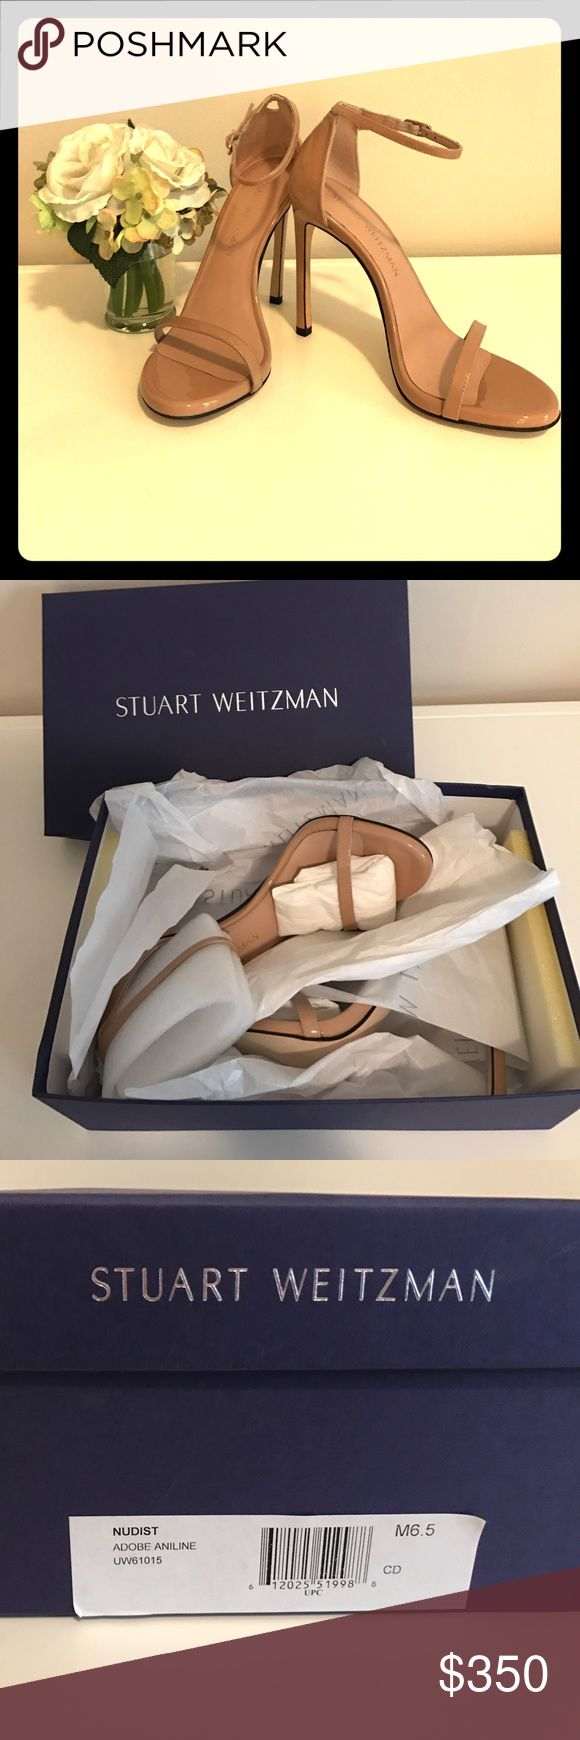 Stuart Weitzman Nudist Heels Rock the runway or your next night on the town in these GORGEOUS heels. This celebrity favorite will be your new favorite wardrobe staple. This neutral color, Adobe Aniline, will compliment every item in your closet. Stuart Weitzman Shoes Heels